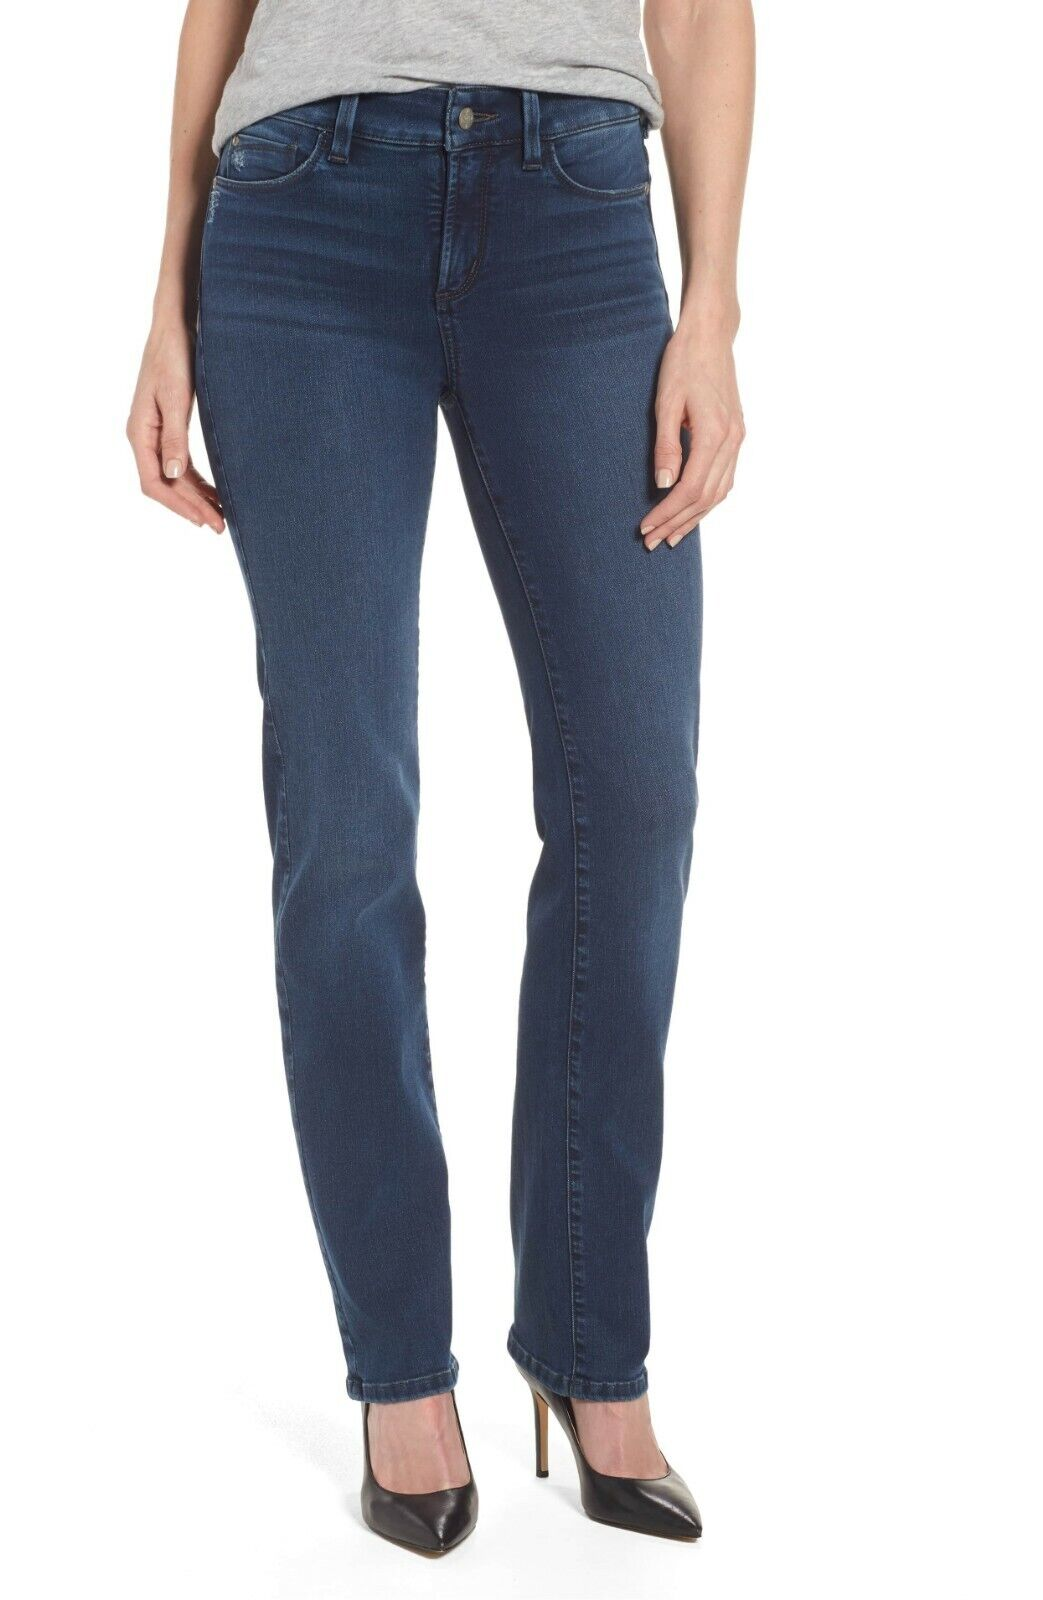 NWT Not Your Daughter's Jeans NYDJ Marilyn Straight in Traveler Uplift Jeans 16P